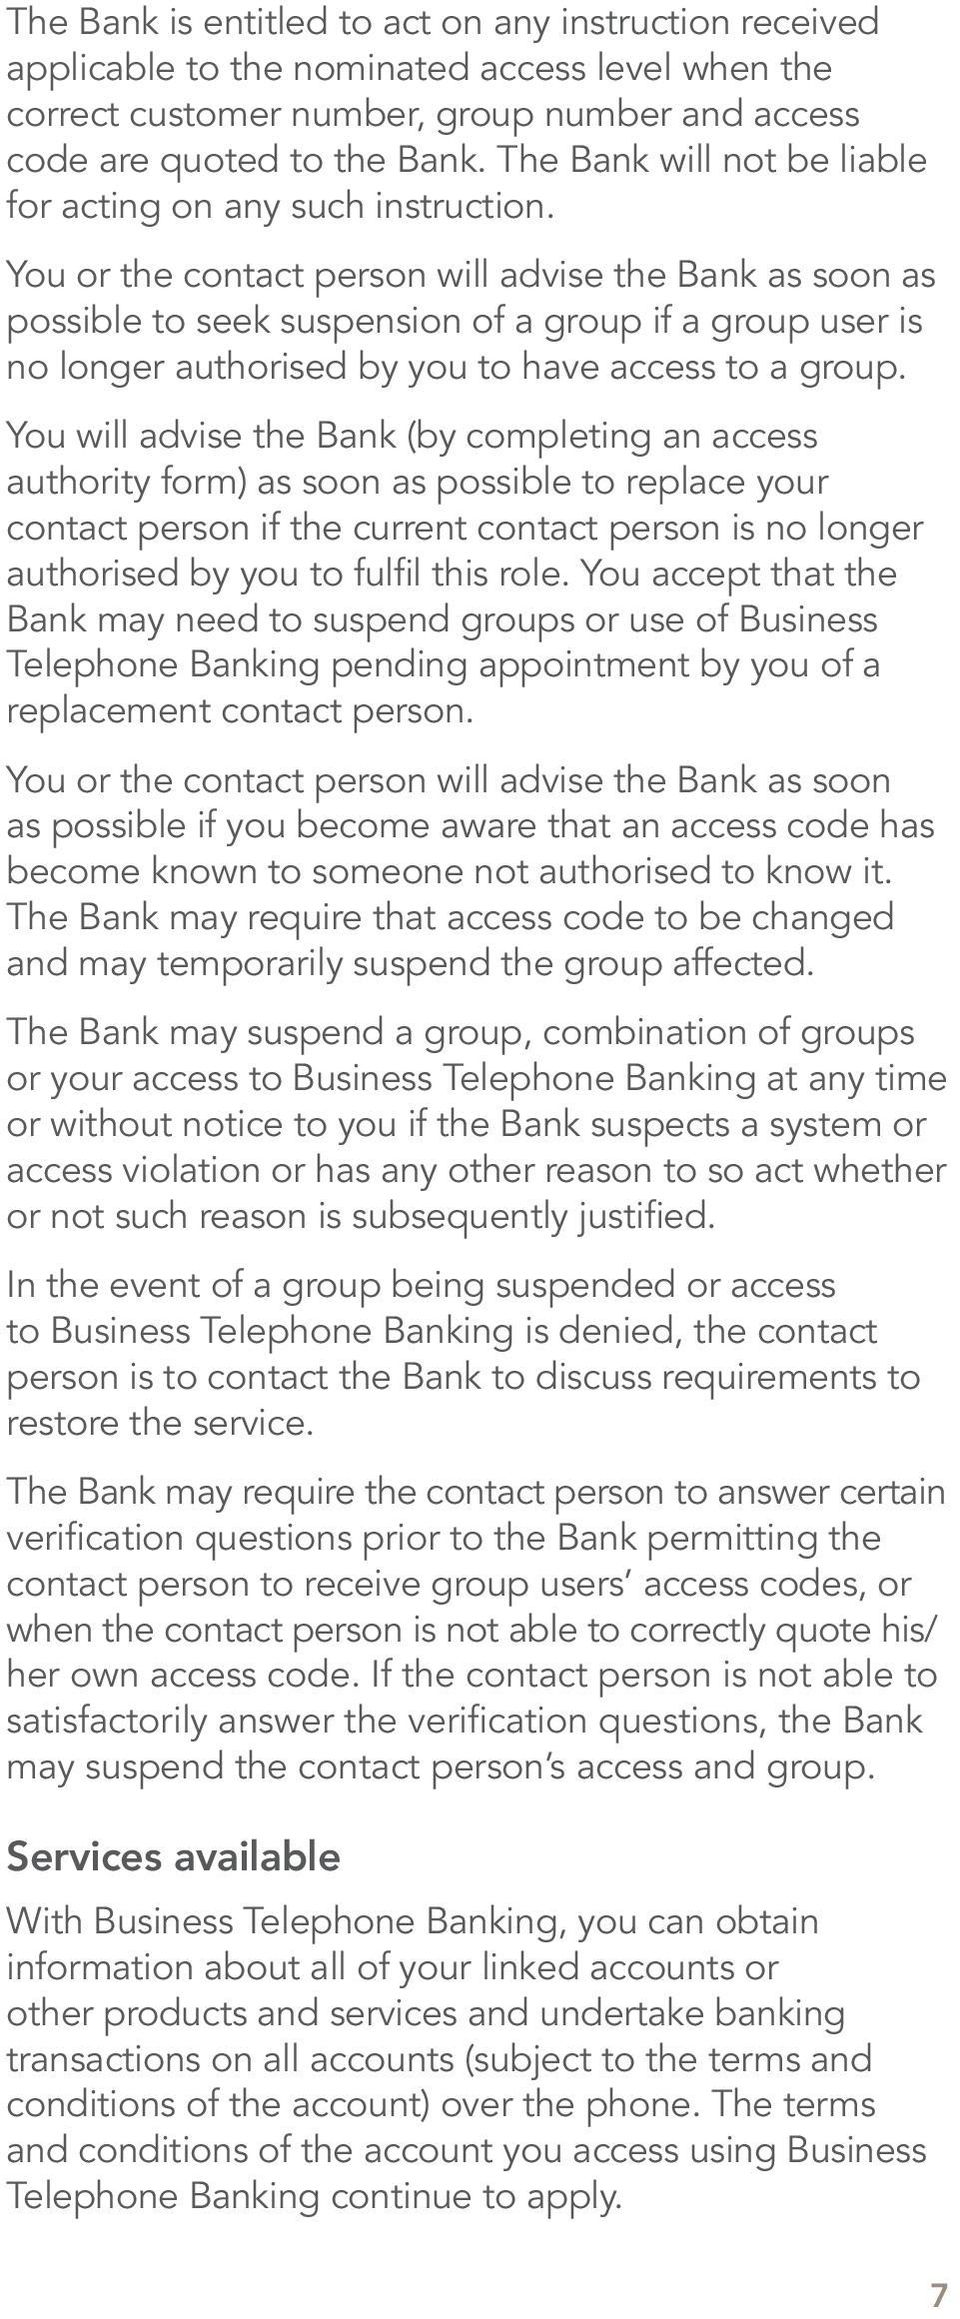 You or the contact person will advise the Bank as soon as possible to seek suspension of a group if a group user is no longer authorised by you to have access to a group.